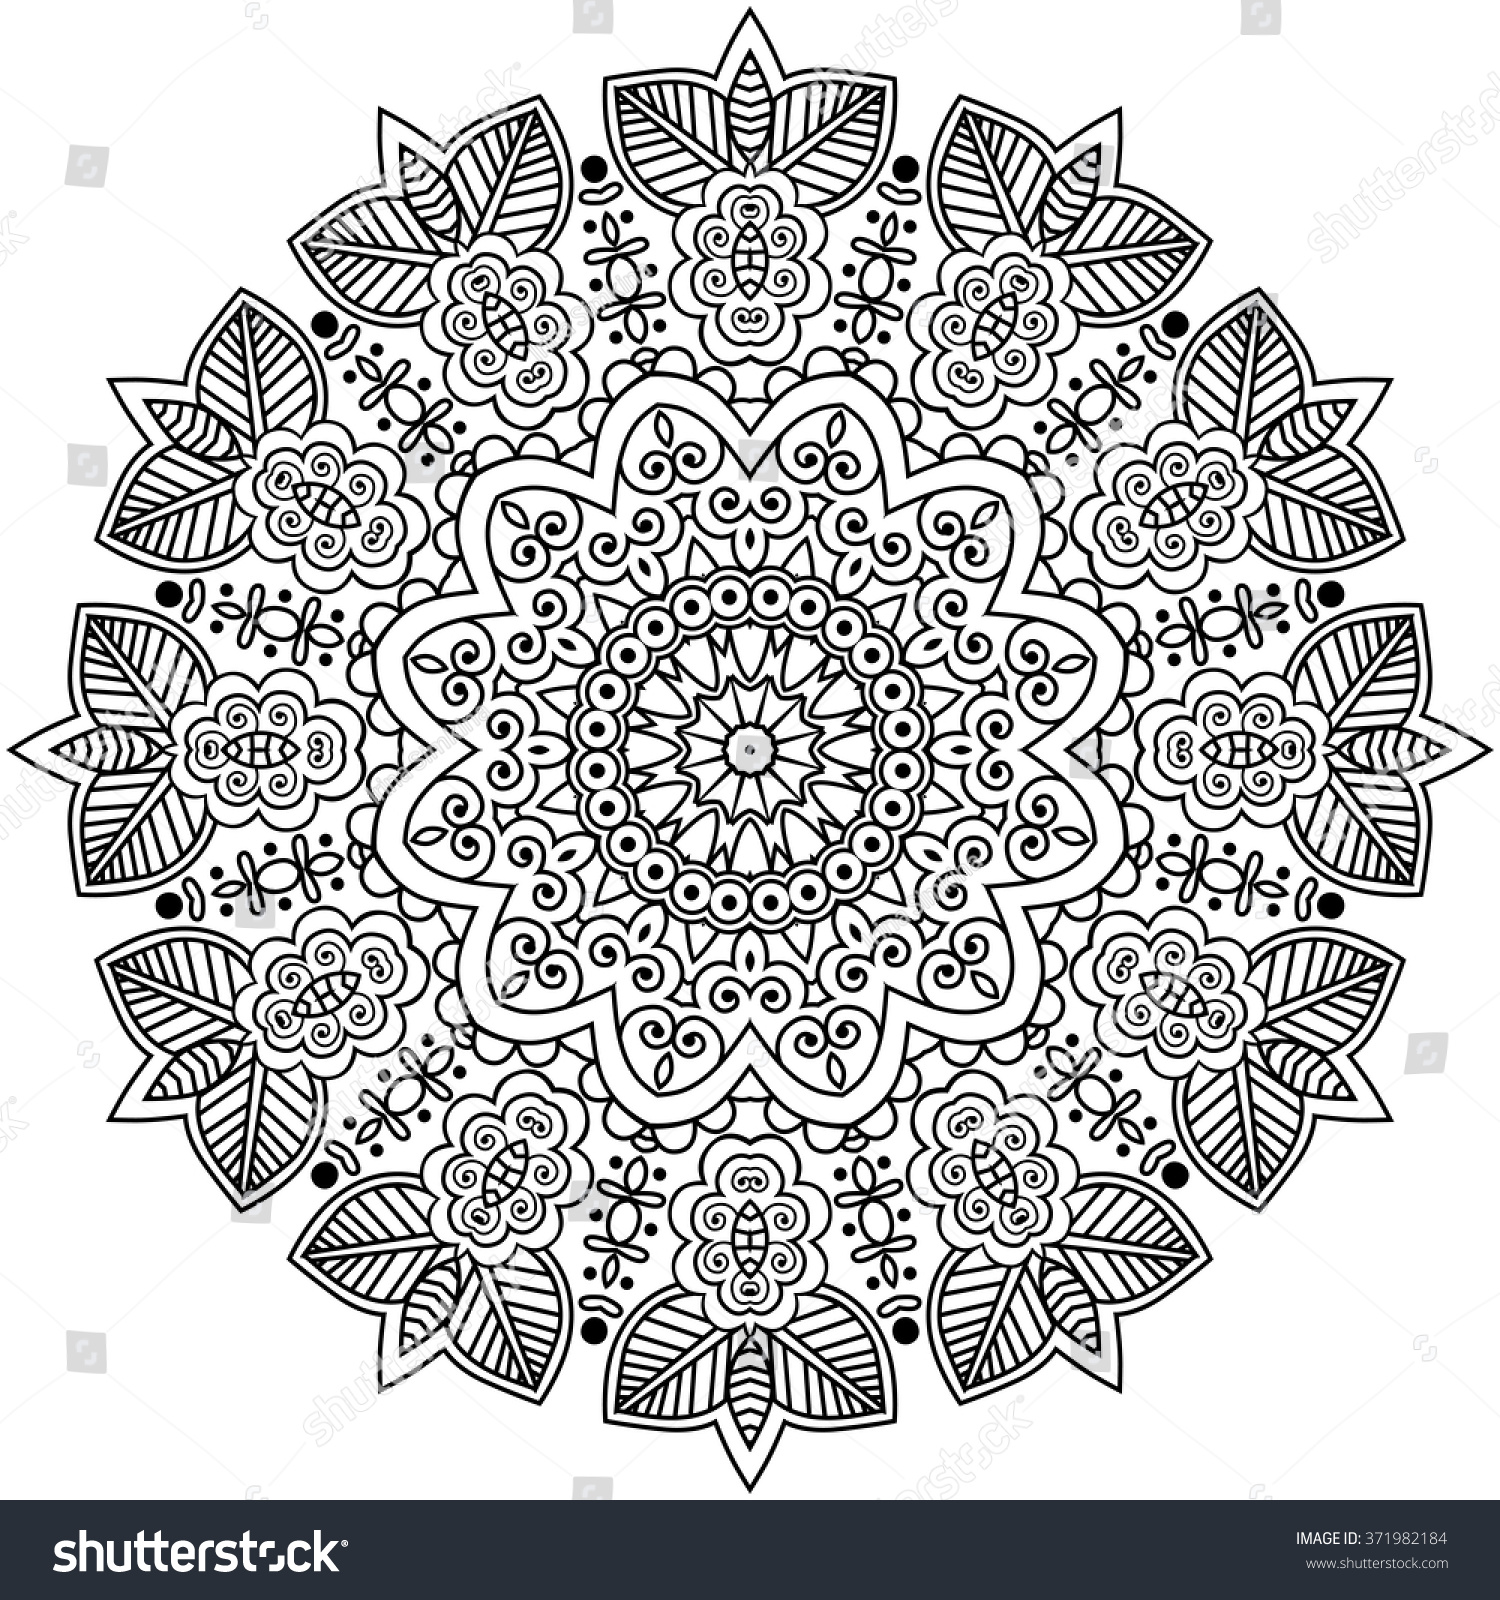 mandala coloring illustration coloring book stock vector